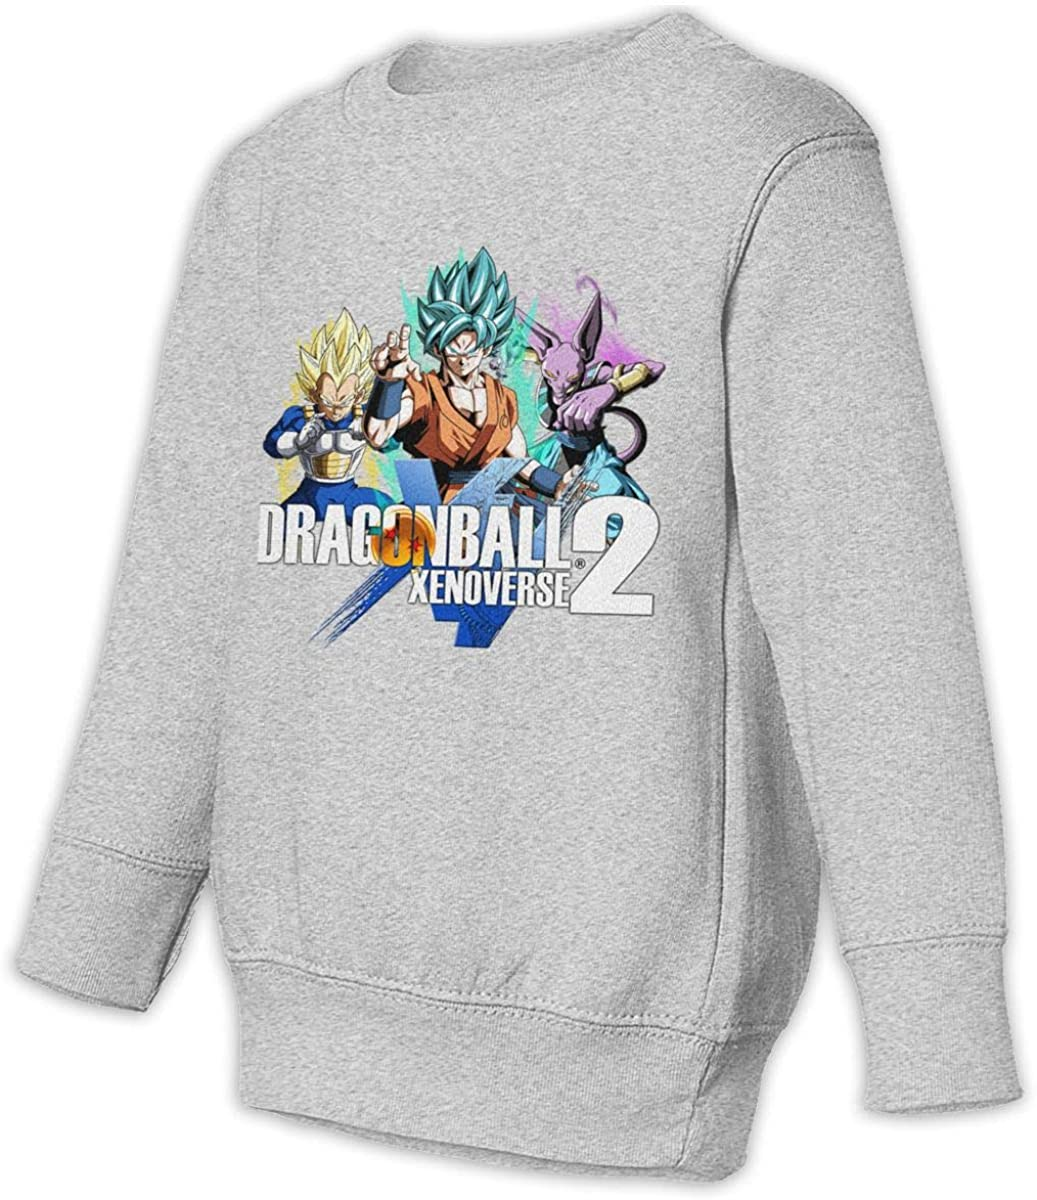 HsHdesign Child Long Sleeve Dragon Ball Xenoverse 2 Graphic Pullover for Spring//Autumn//Winter 2-6T